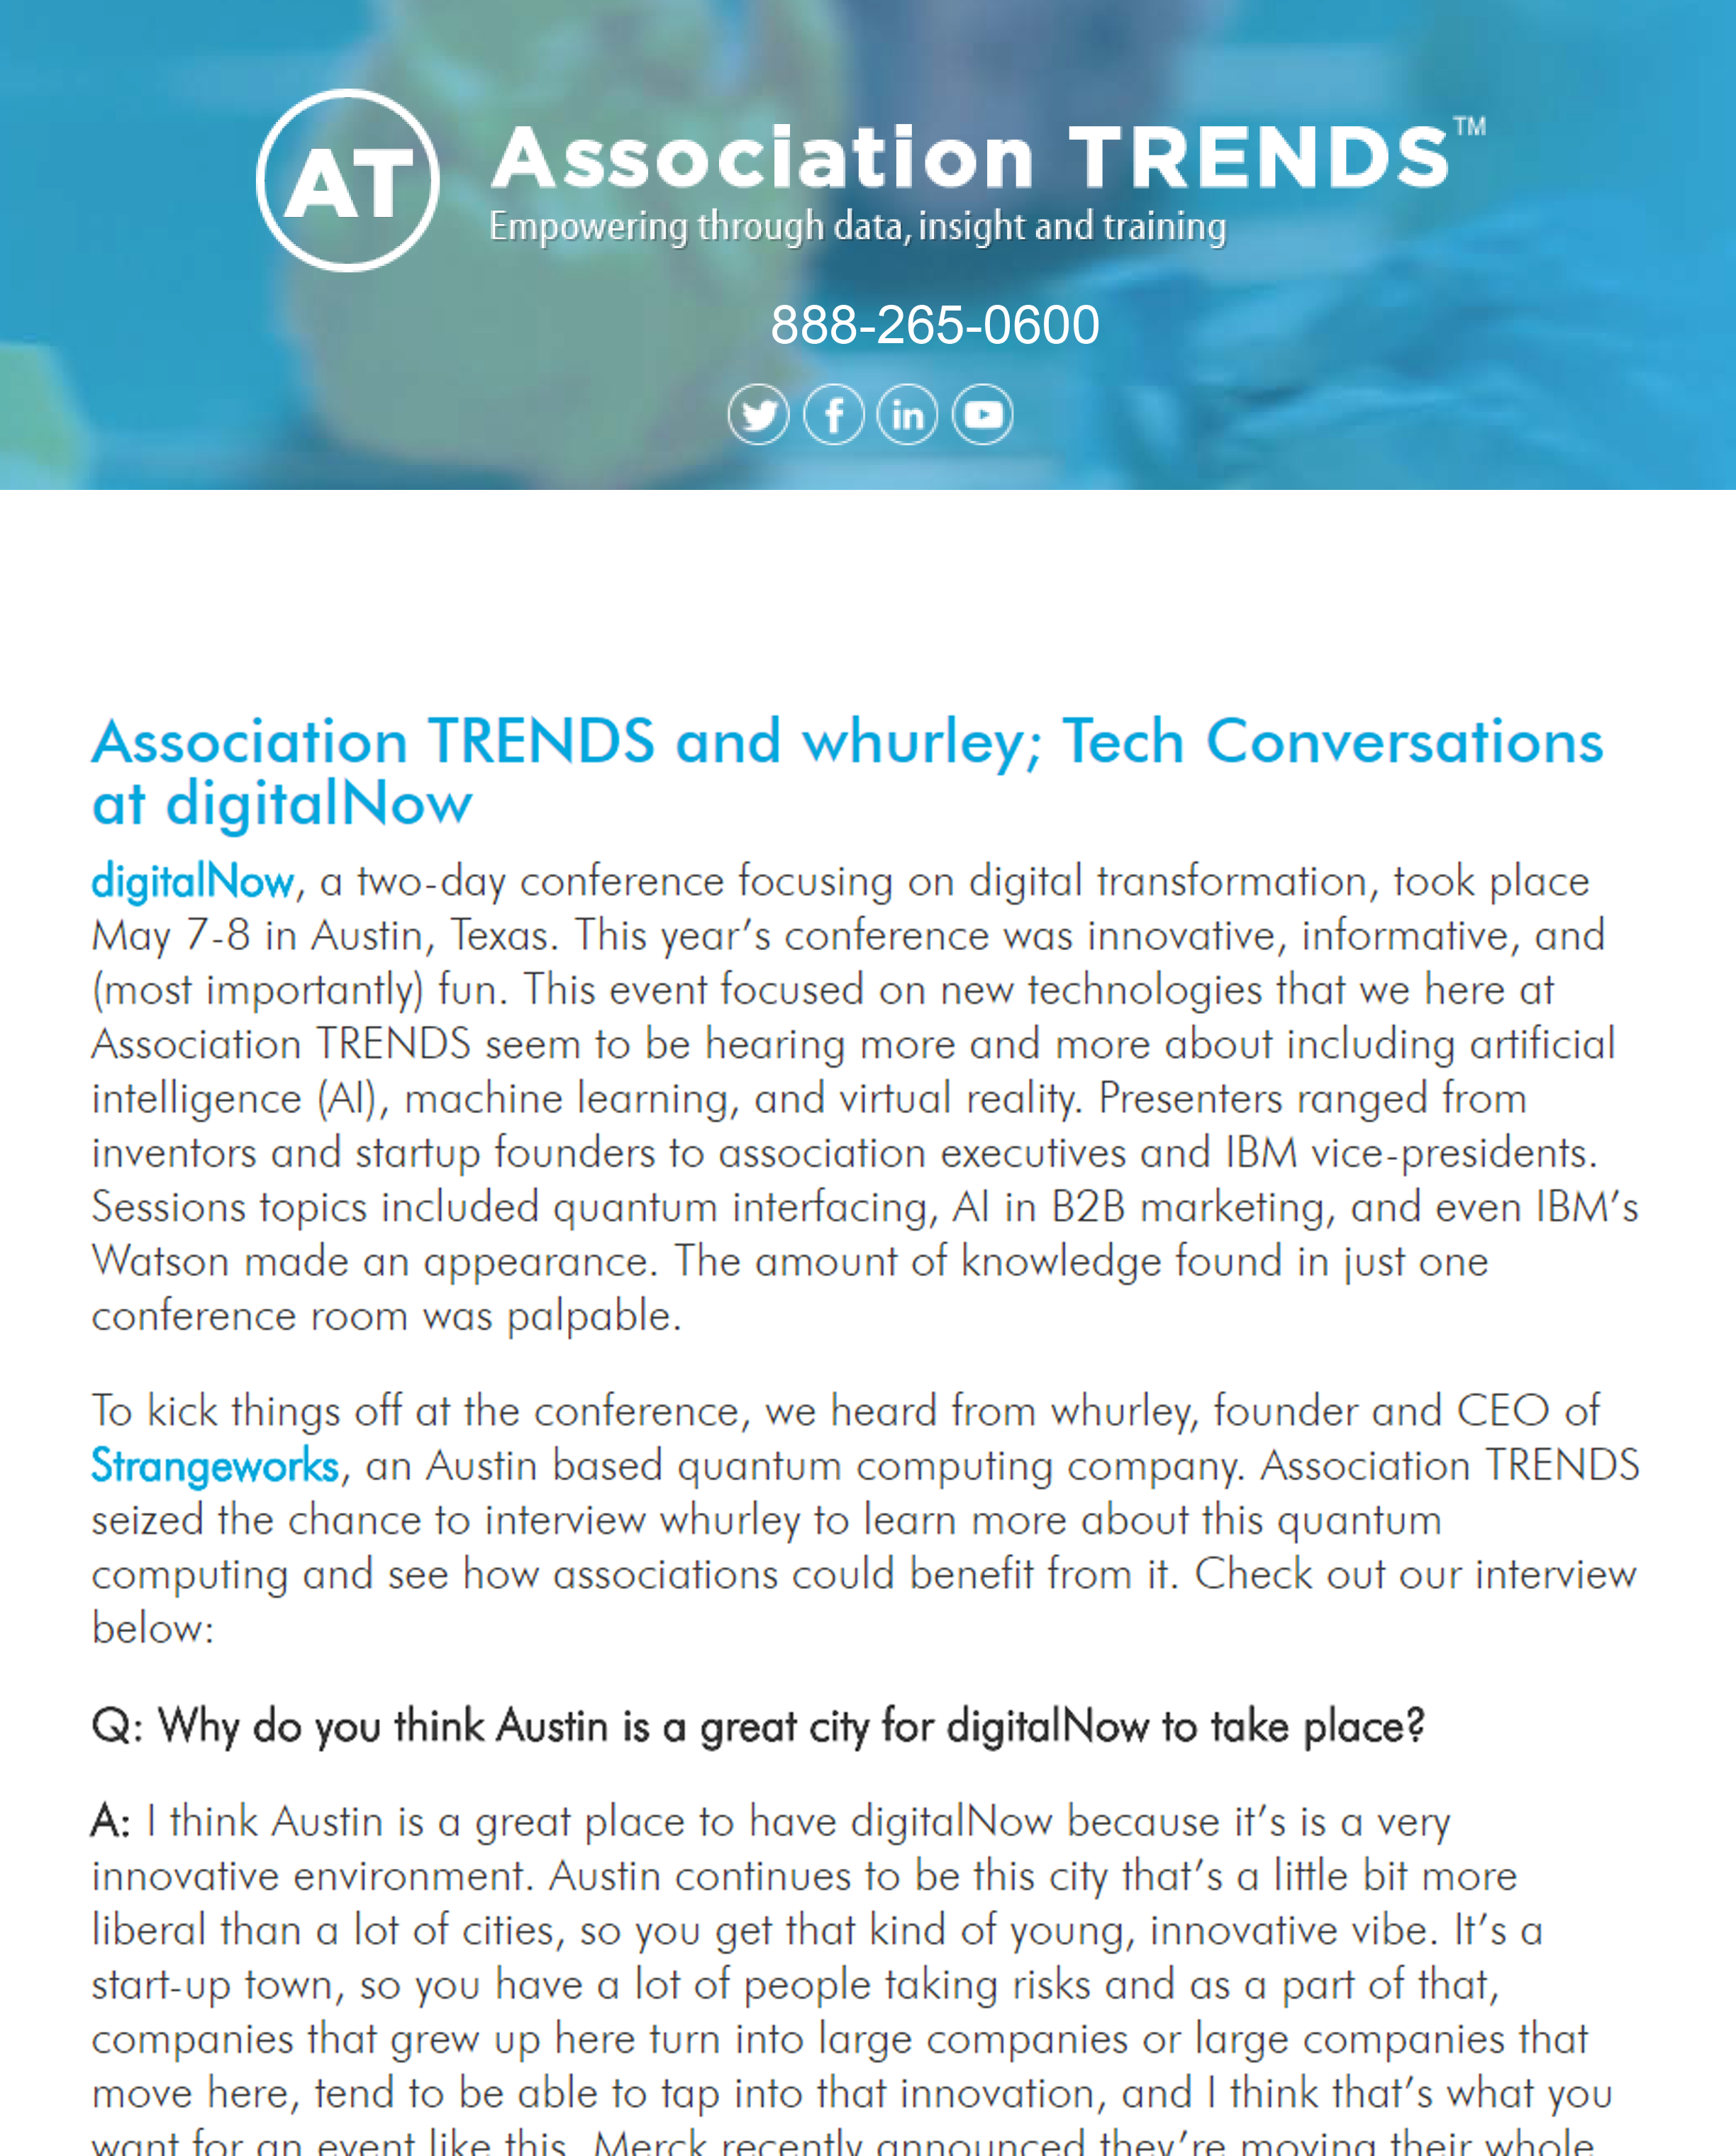 Association TRENDS and whurley; Tech Conversations at digitalNow _ Association TRENDS-1.png